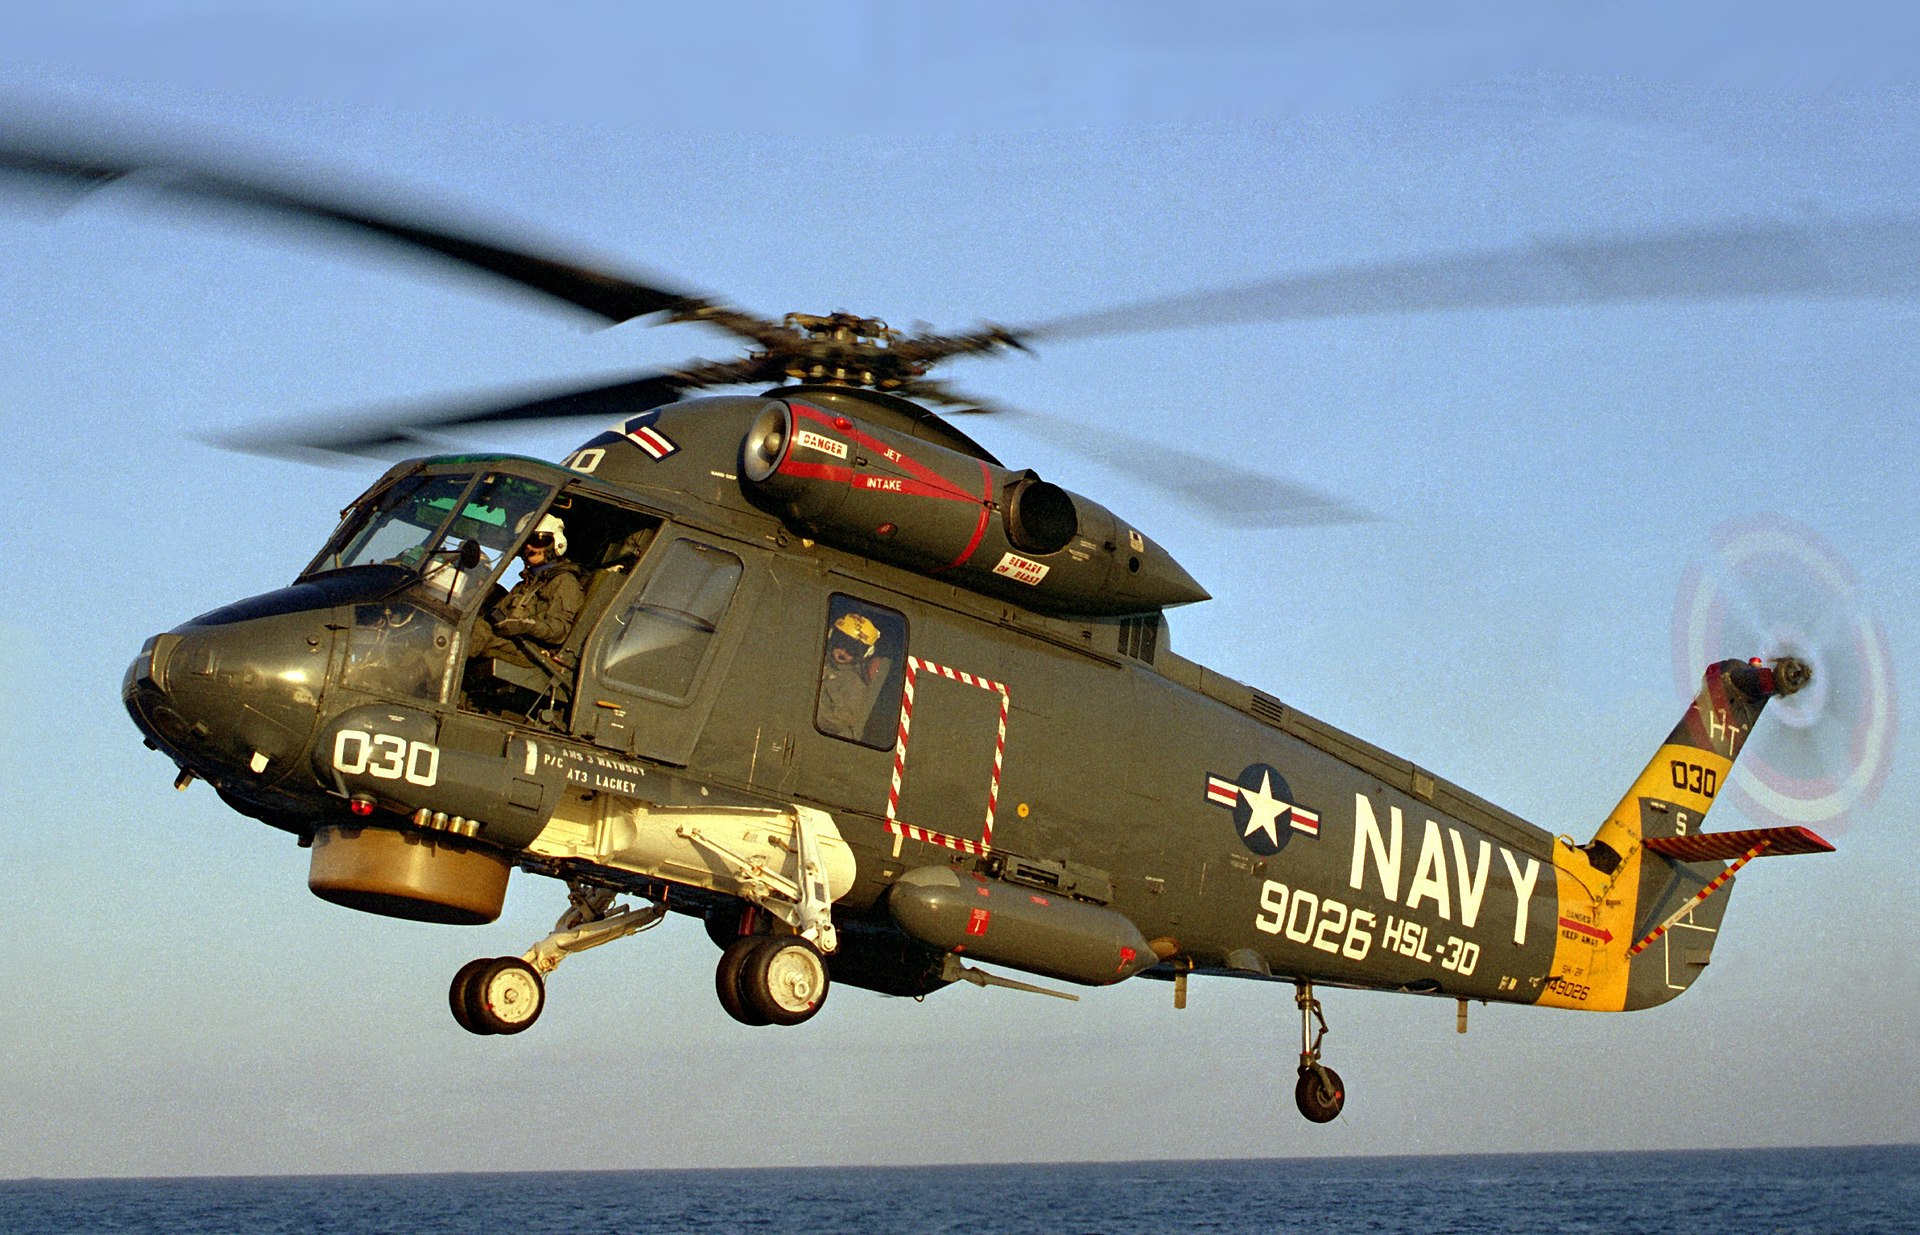 /Anigrand_Catalog/Anigrand/anigrand/updates/AA4081_SH-2F_Seasprite_landing_on_the_USS_Nicholson_(cropped).jpg